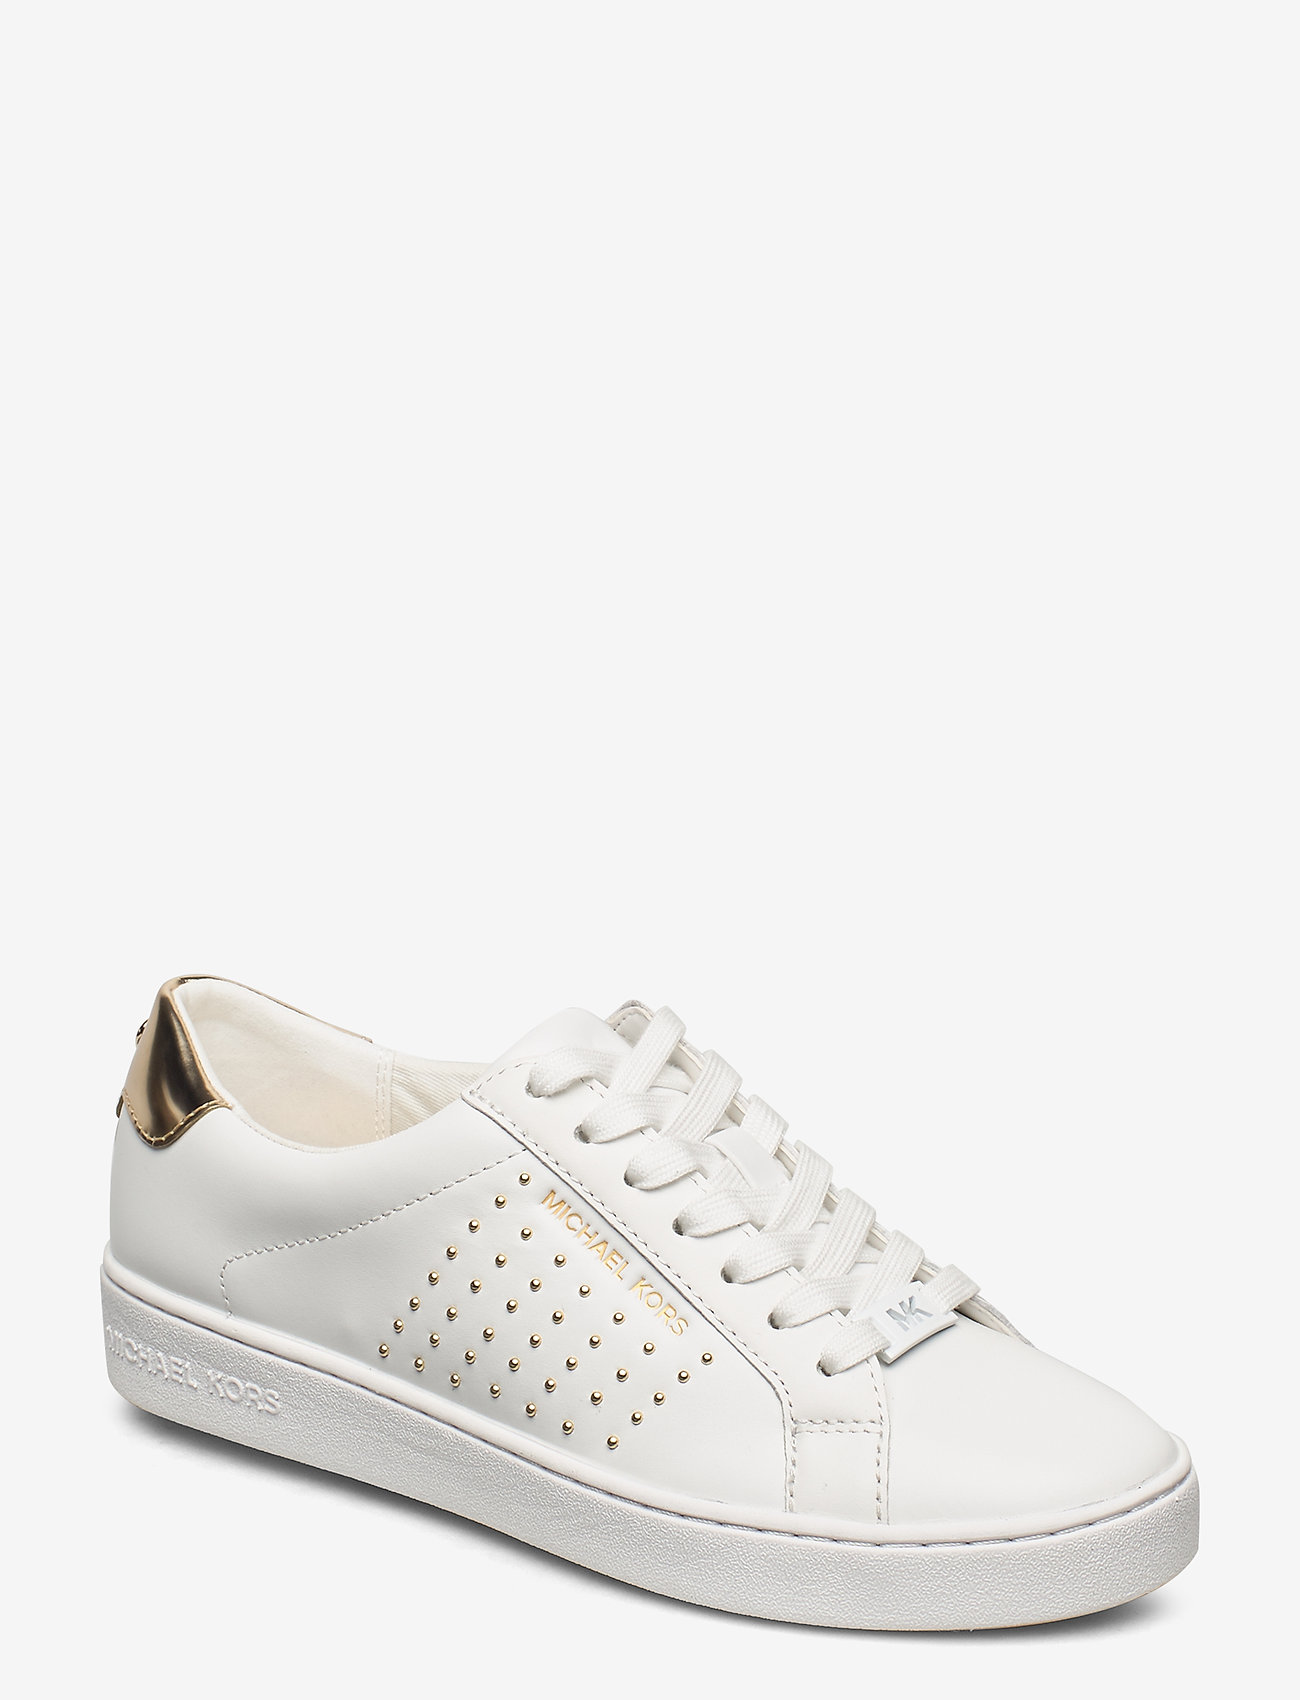 Michael Kors Shoes - IRVING LACE UP - lage sneakers - optic white - 0